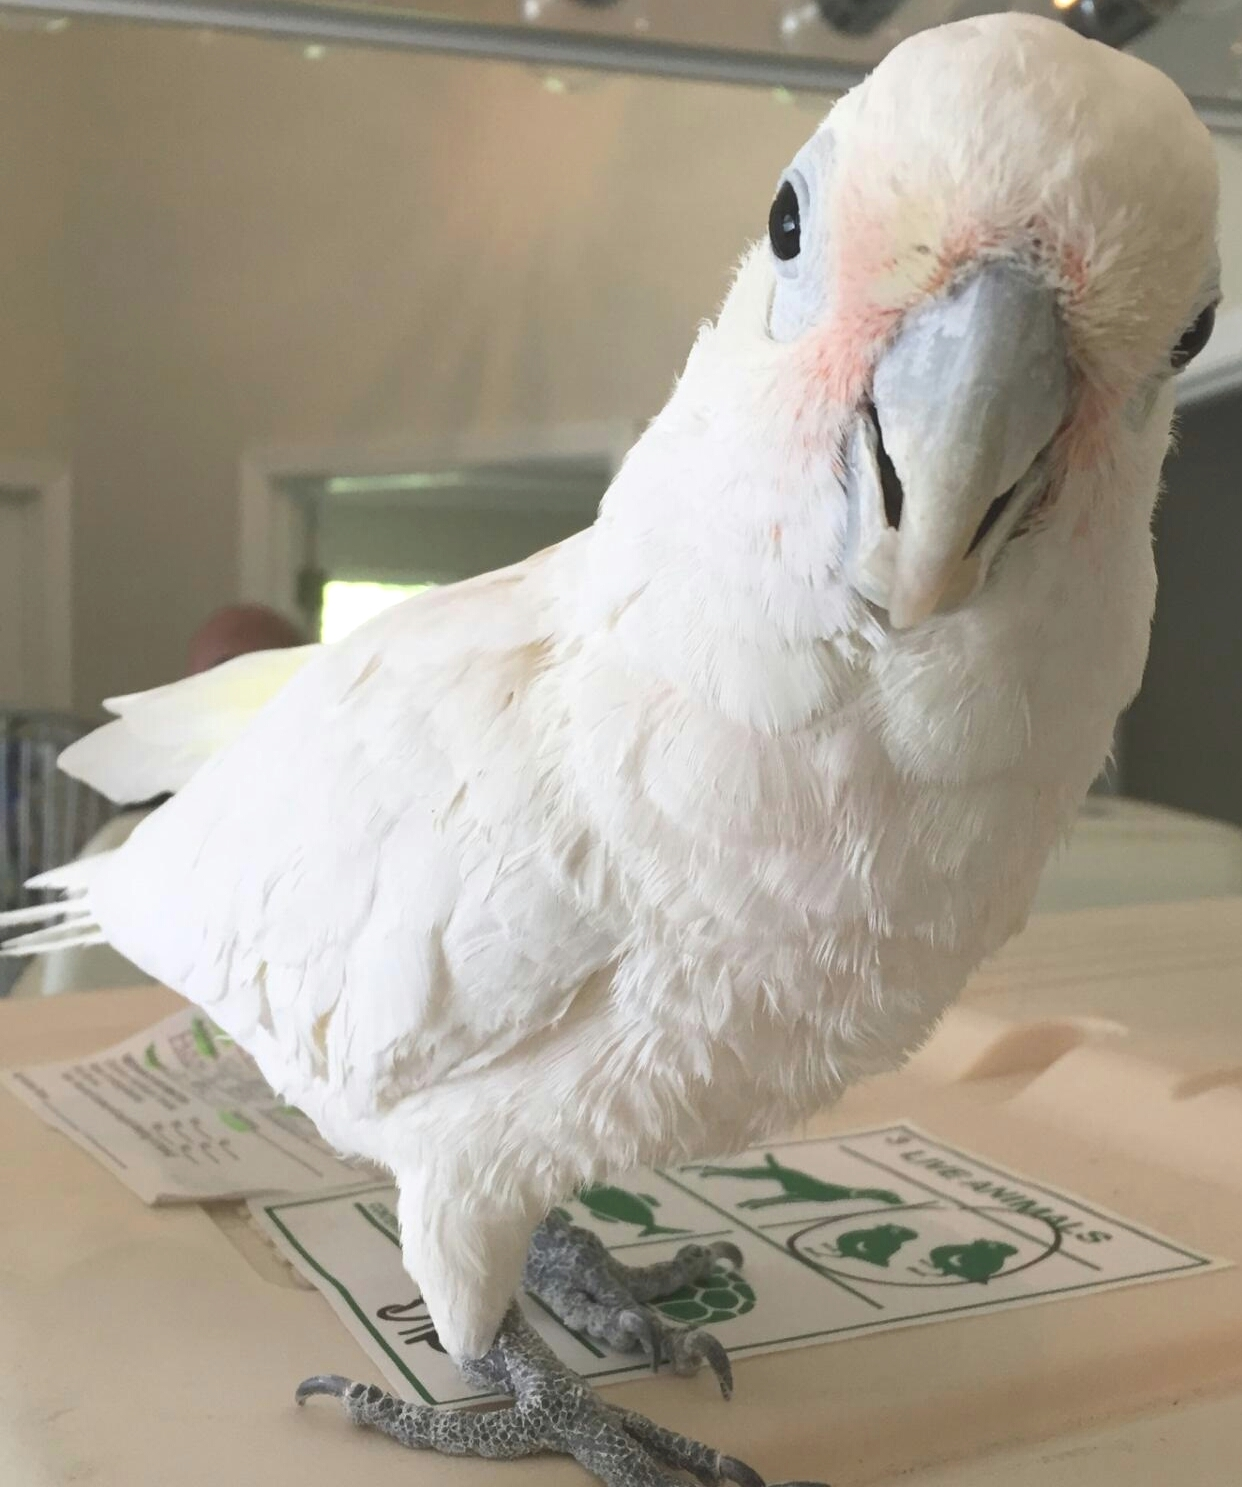 buster the cockatoo